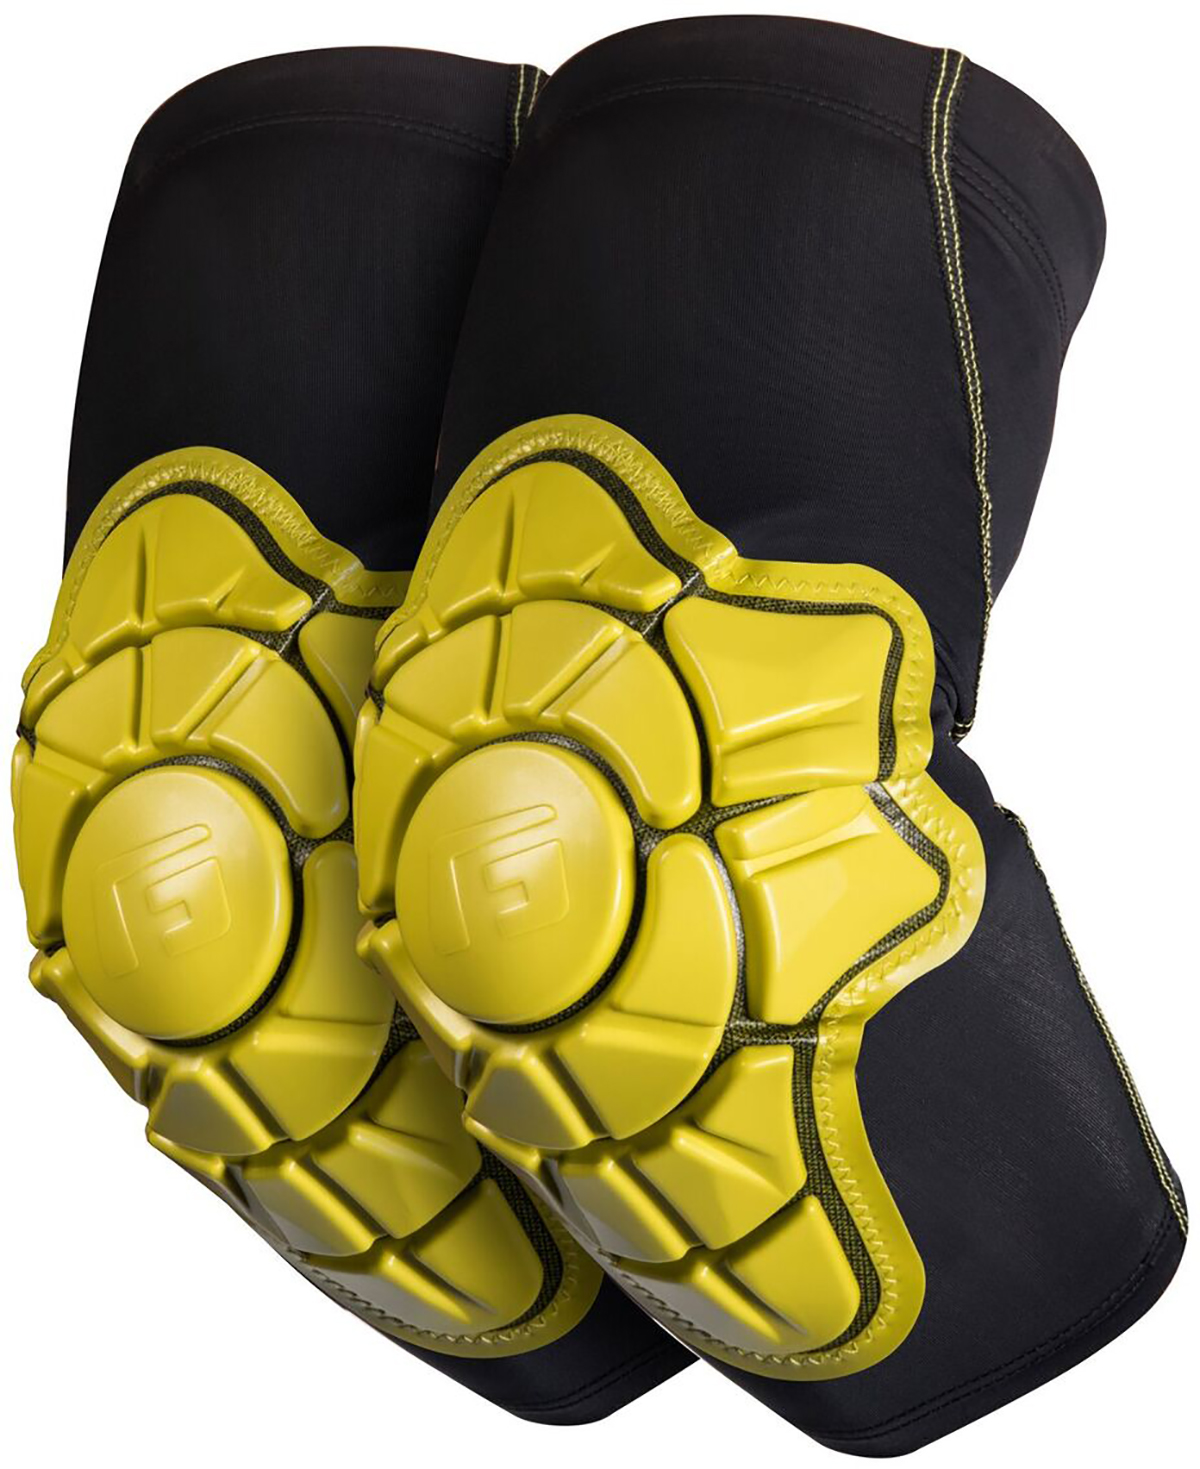 Wiggle | G-Form Pro-X Elbow Pad | Body Armour